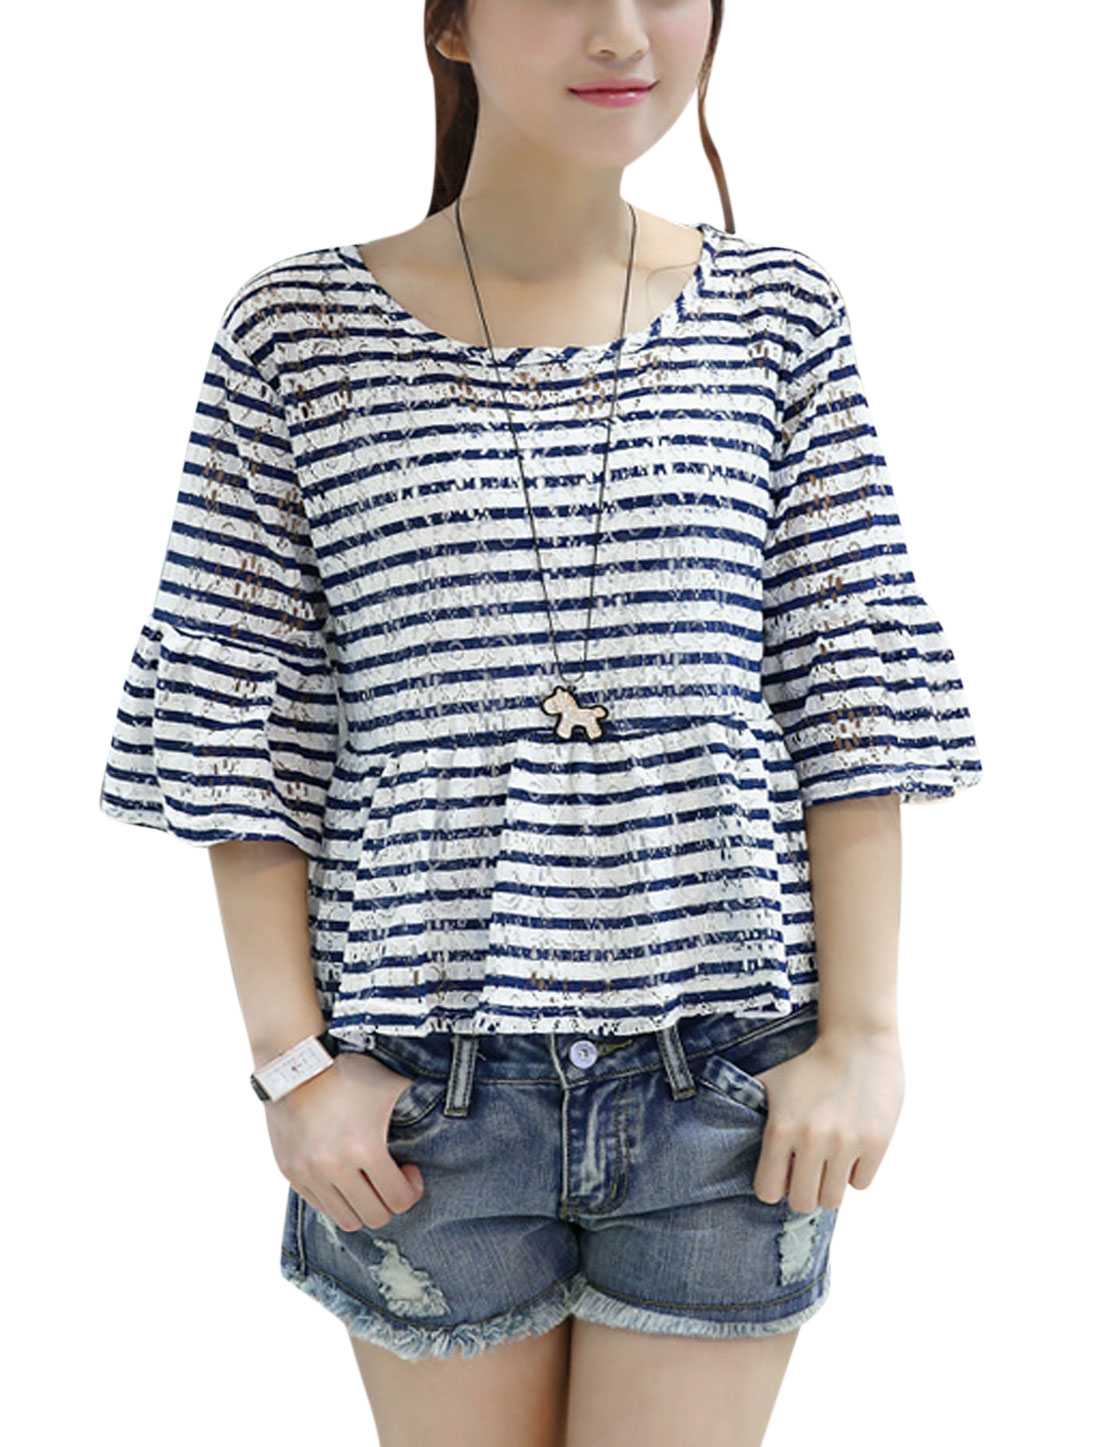 Lady 3/4 Trumpet Sleeve Stripes Hollow Out Peplum Top Blue White M